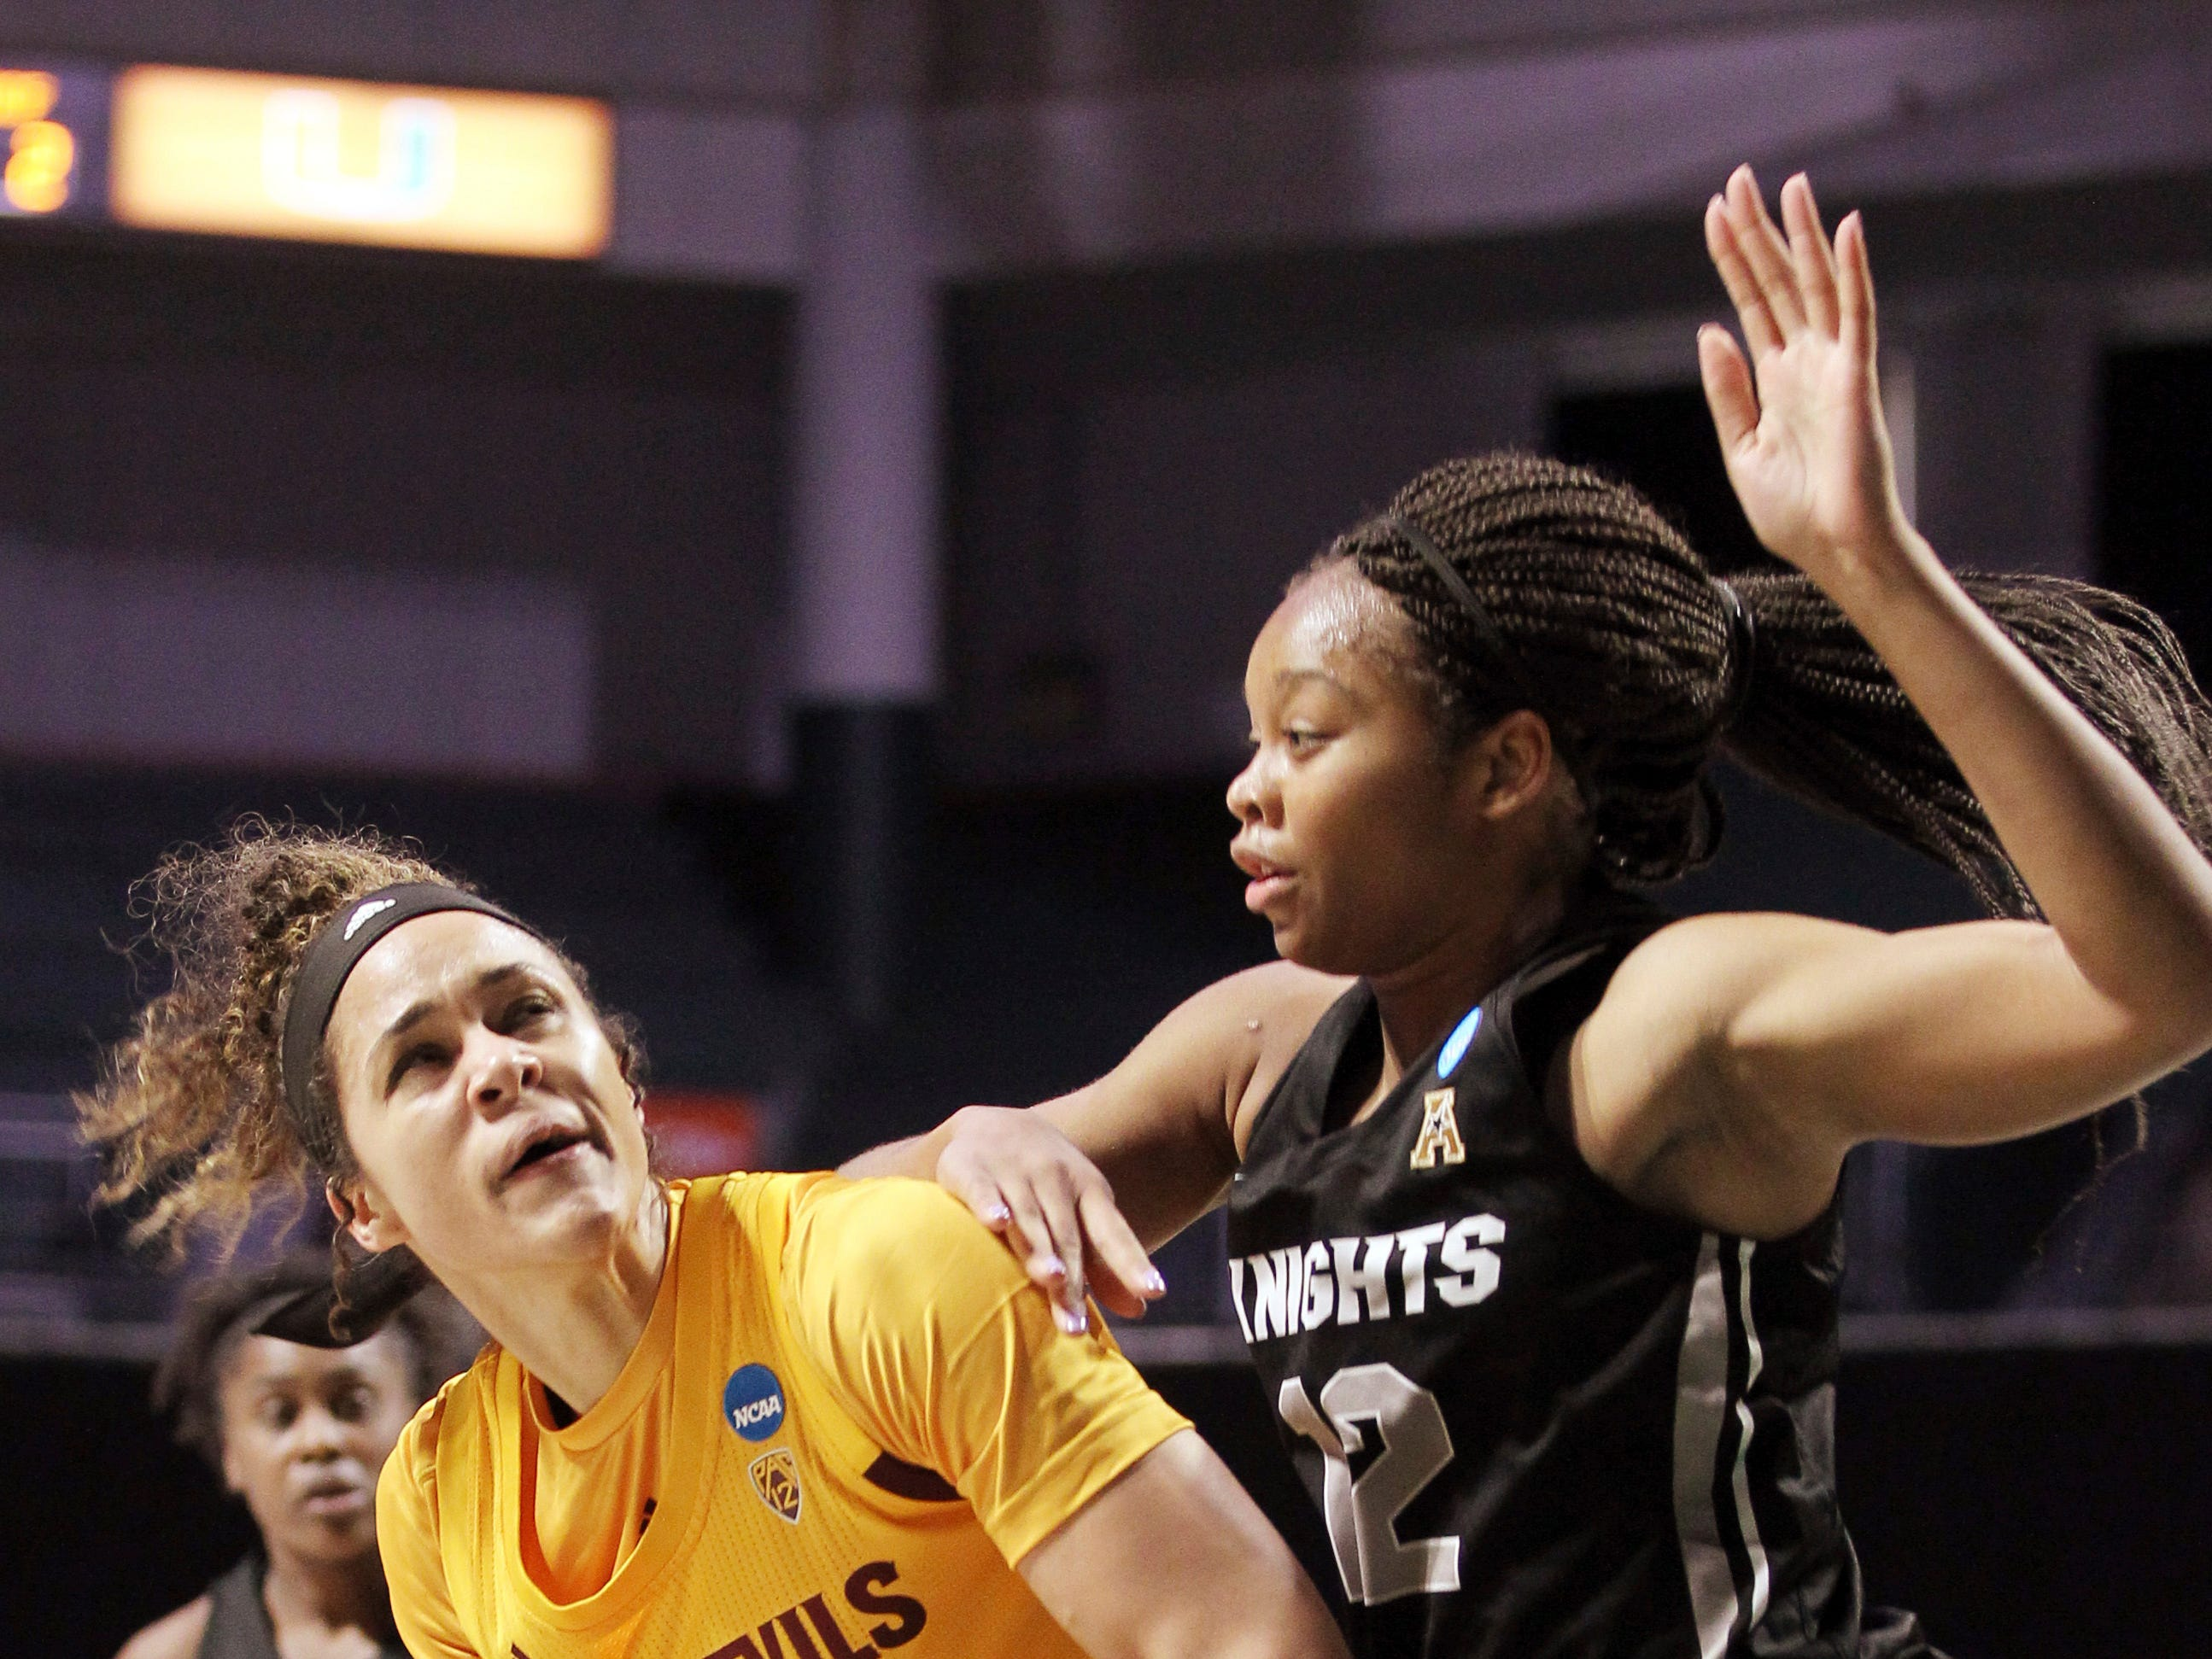 UCF forward Nyala Shuler (12) defends Arizona State forward Kianna Ibis (42), during a first round women's college basketball game in the NCAA Tournament in Friday, March 22, 2019, in Coral Gables, Fla. (AP Photo/Luis M. Alvarez)